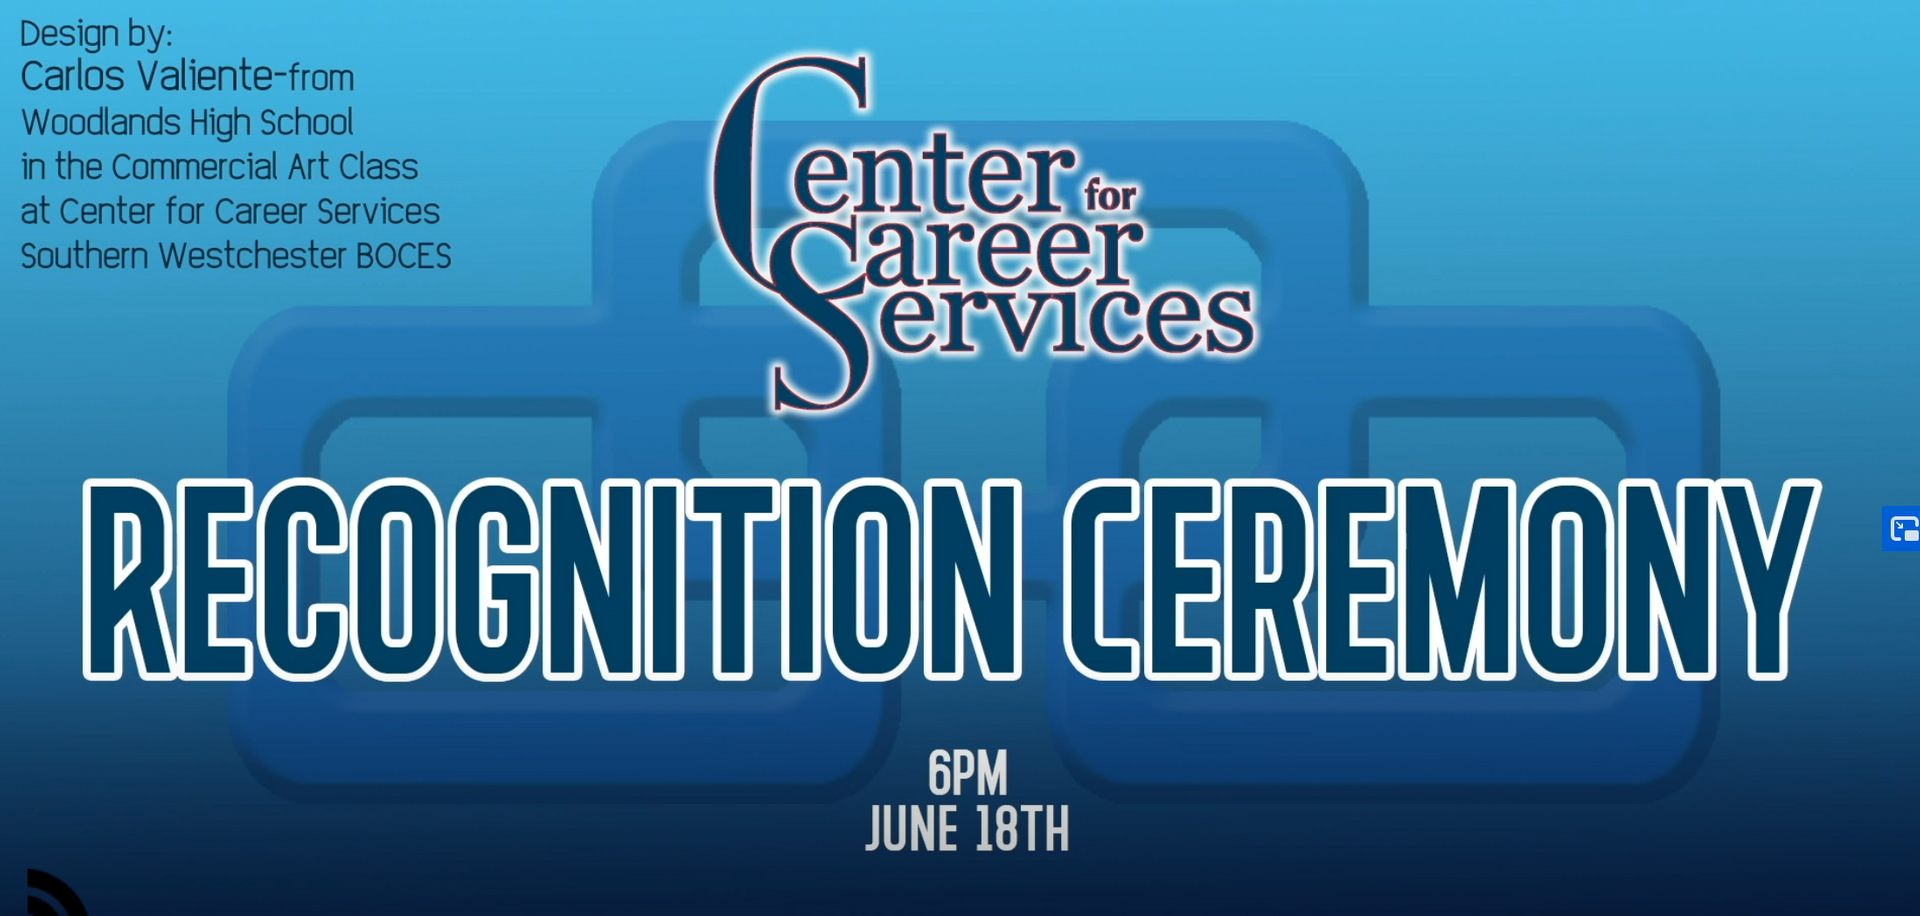 Screen shot of Recognition Ceremony logo